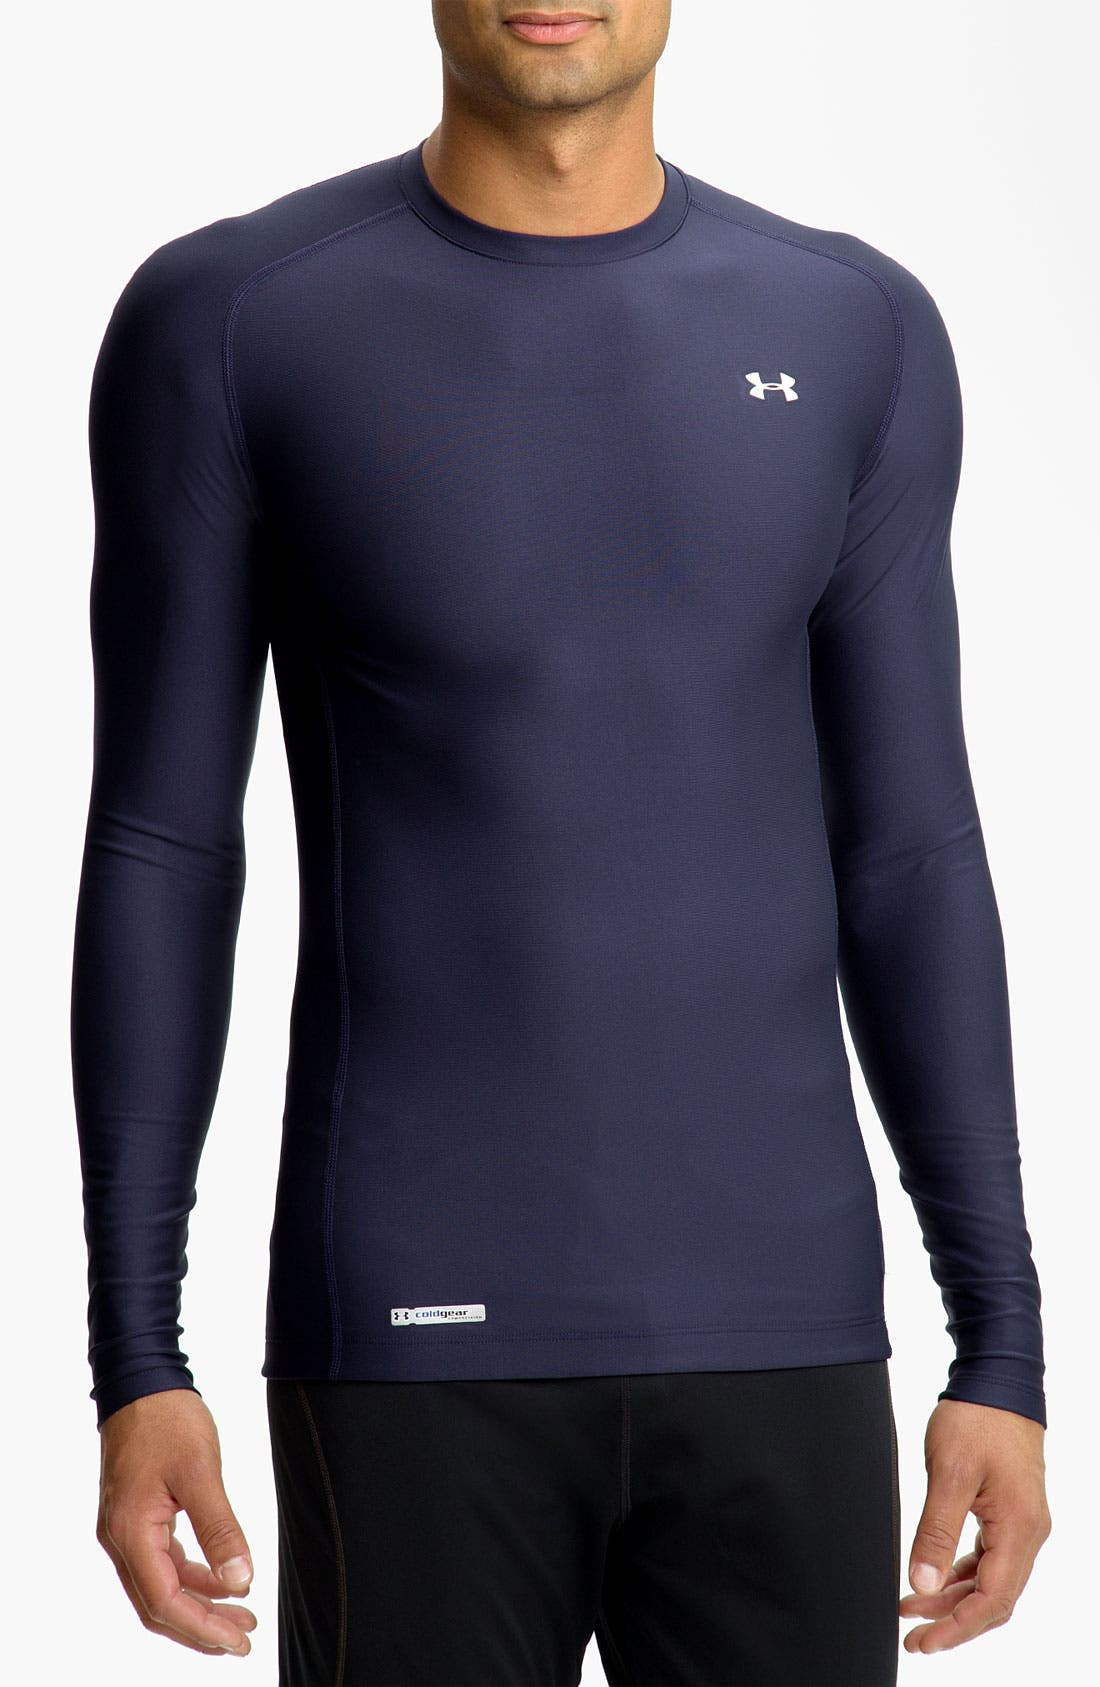 Alternate Image 1 Selected - Under Armour 'Evo - Game Day' ColdGear® Compression T-Shirt (Online Only)